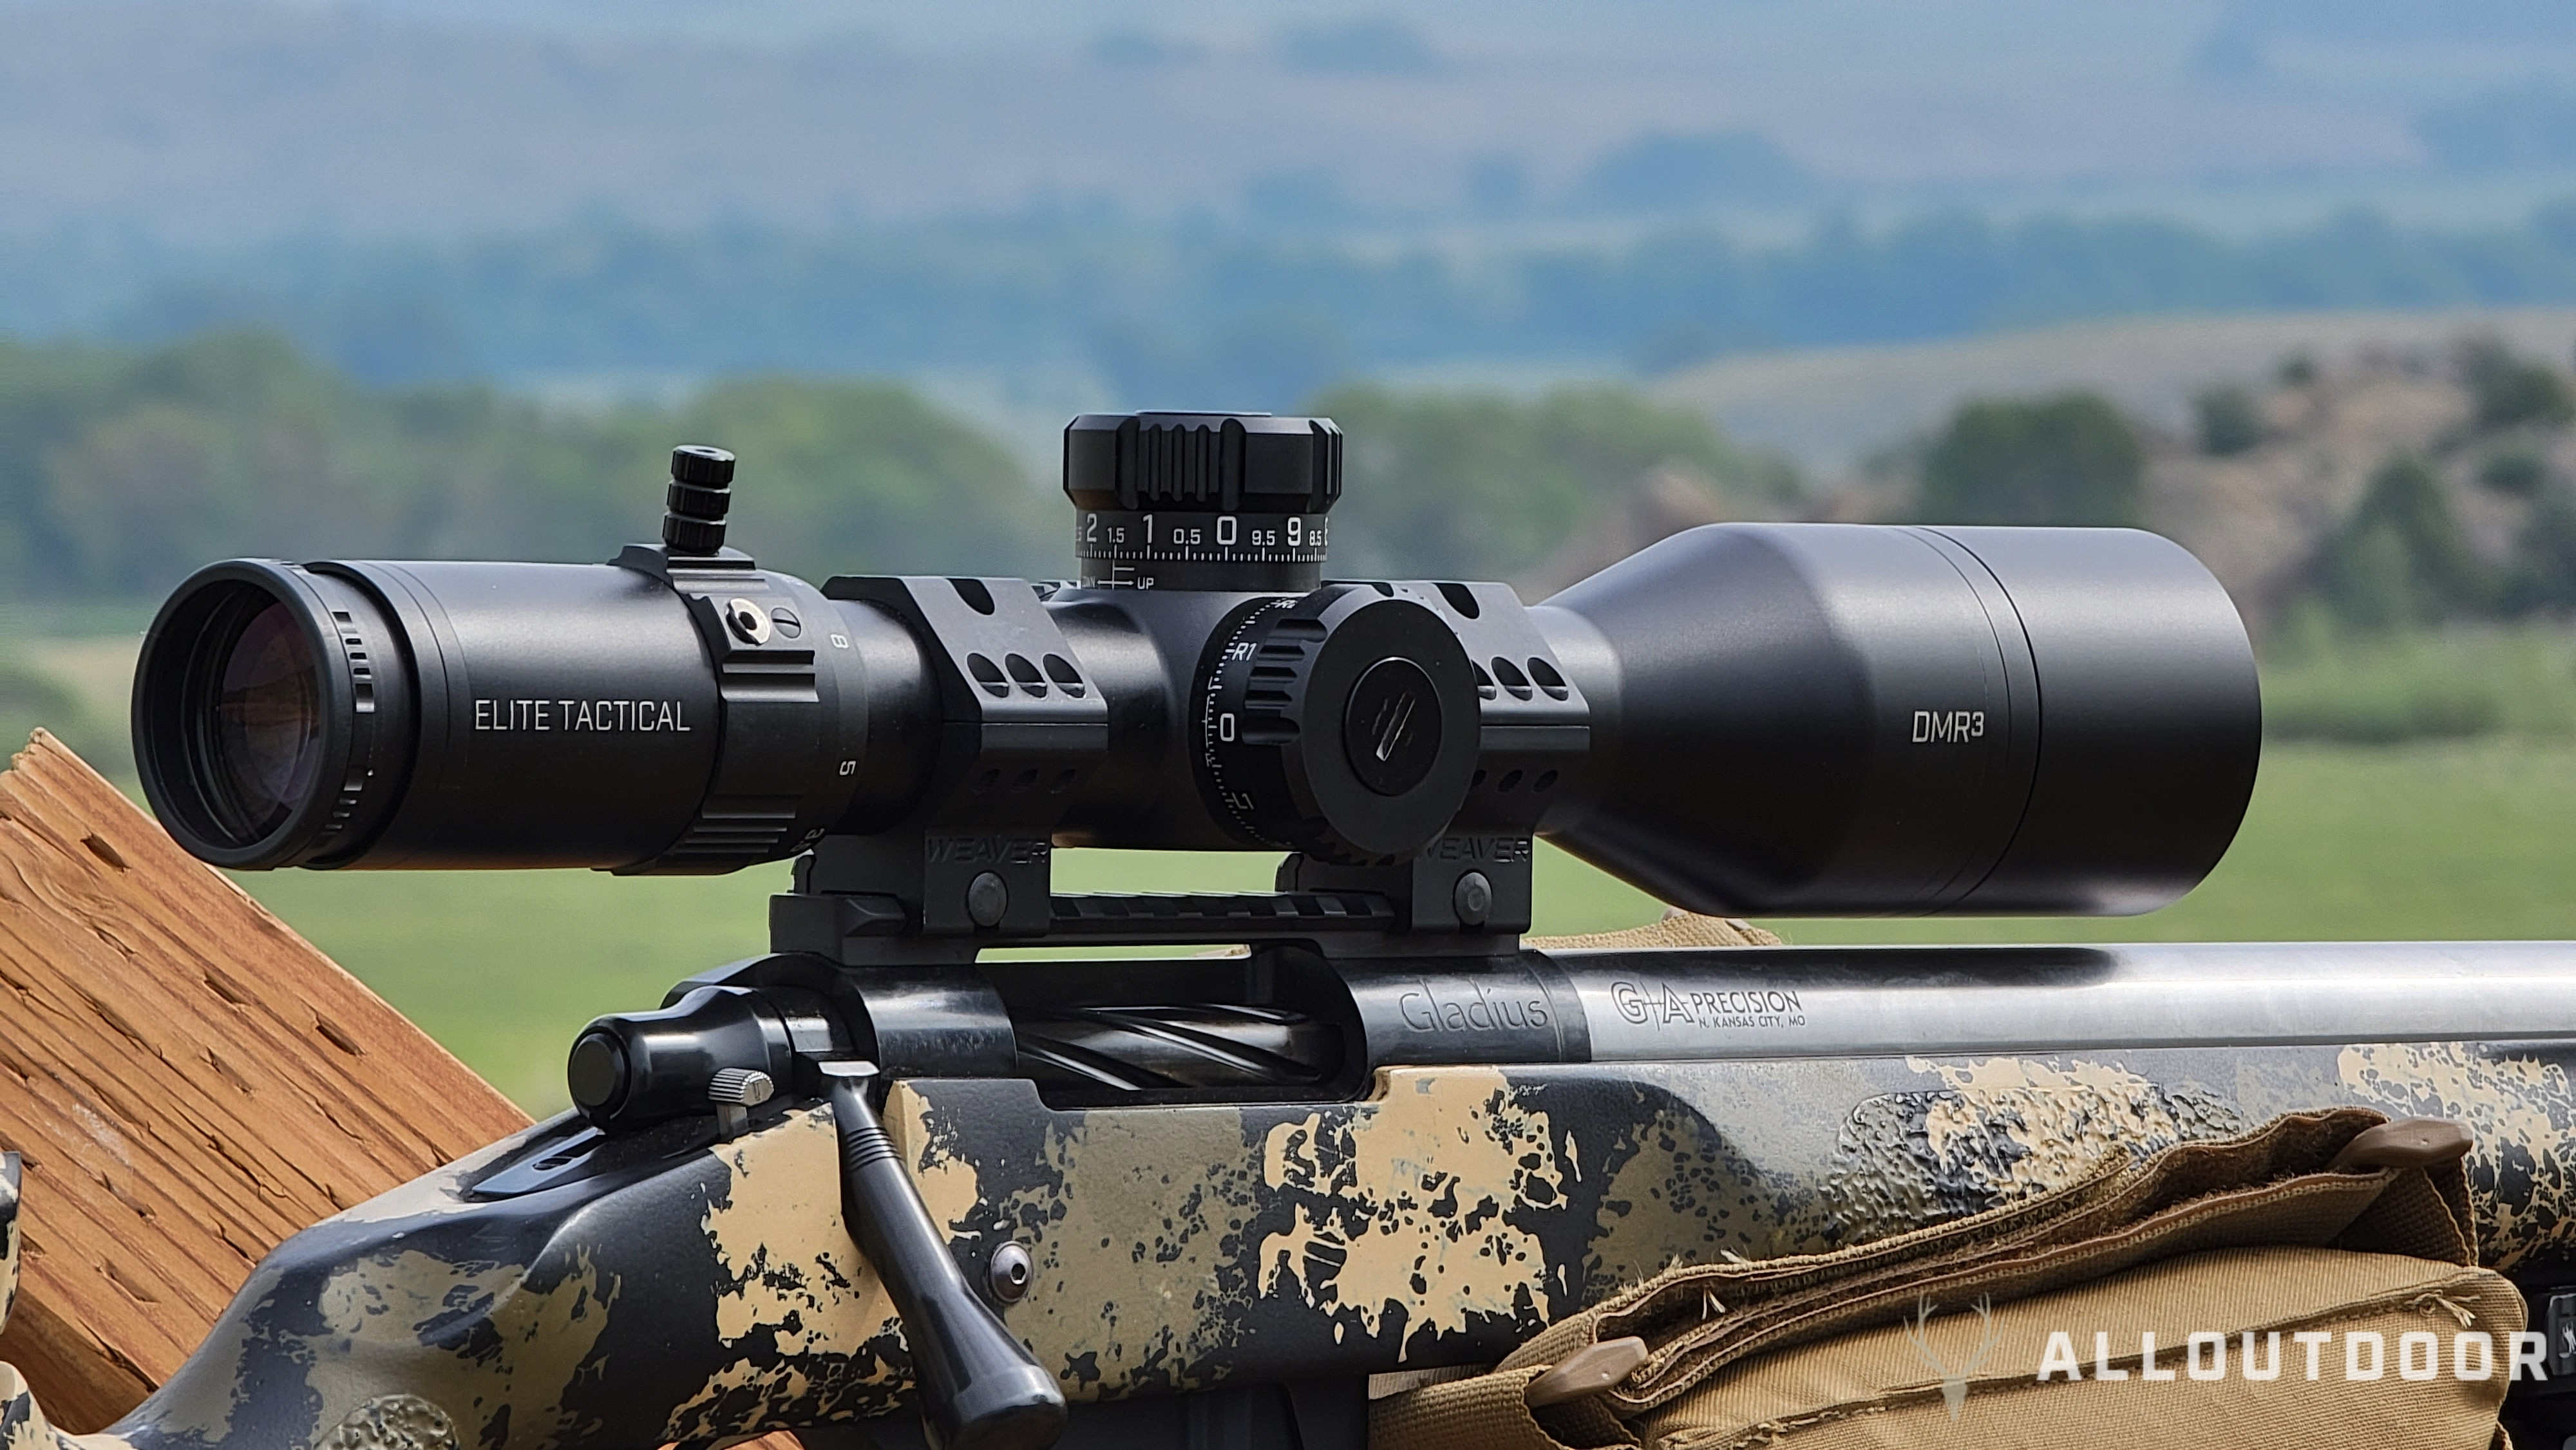 Bushnell's New Elite Tactical XRS3 and DMR3 Riflescopes